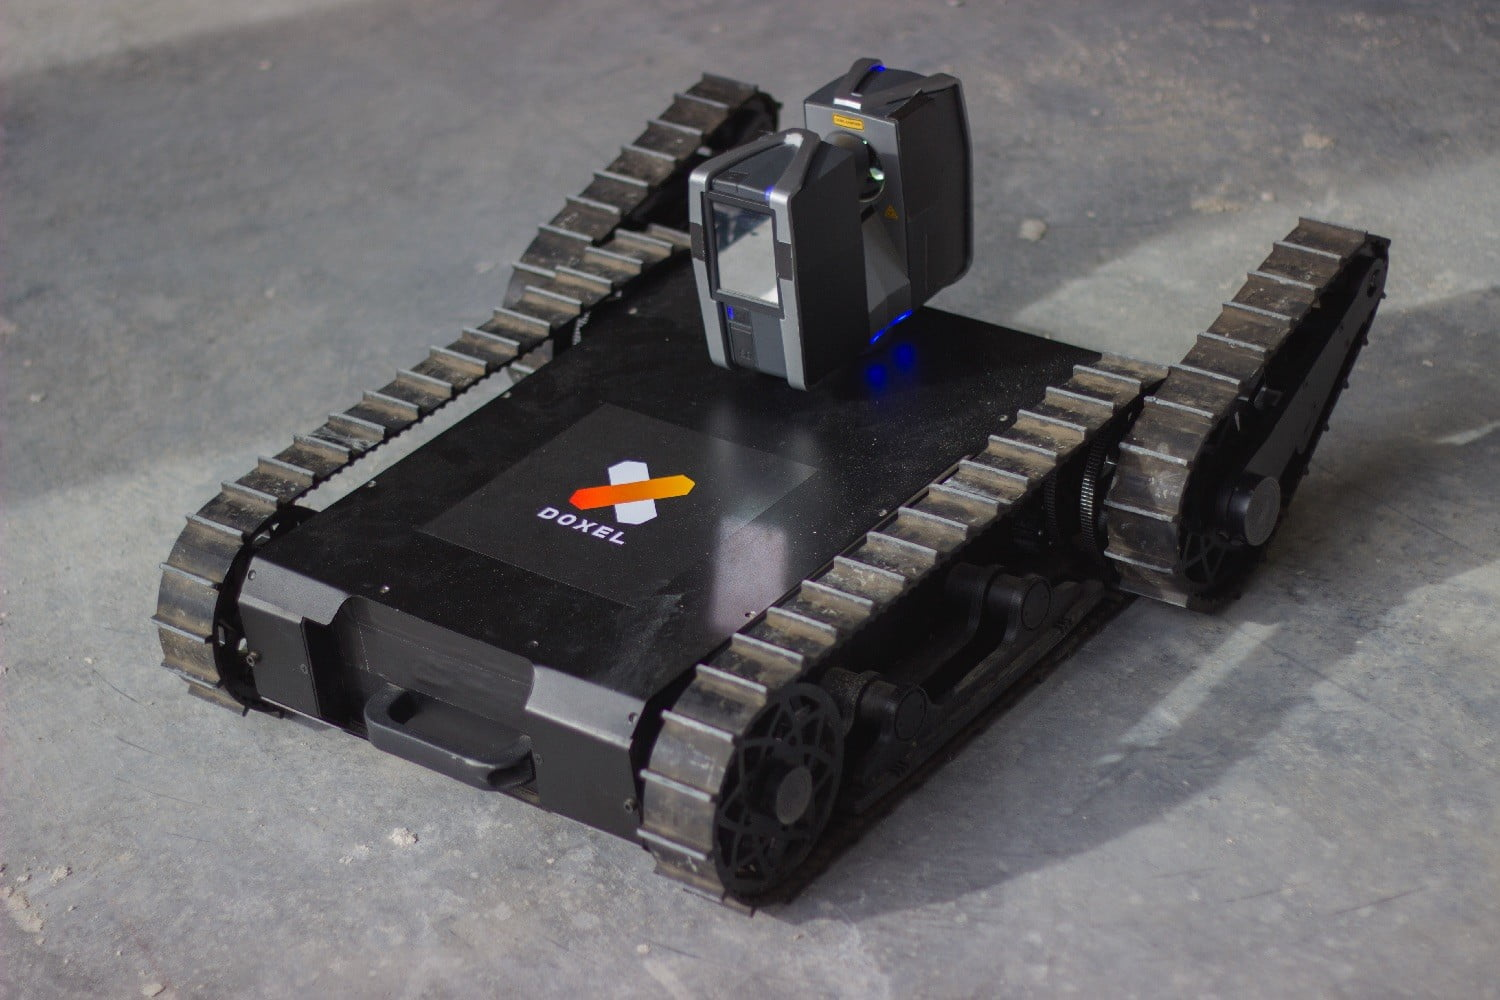 doxel construction monitoring robots rover 01